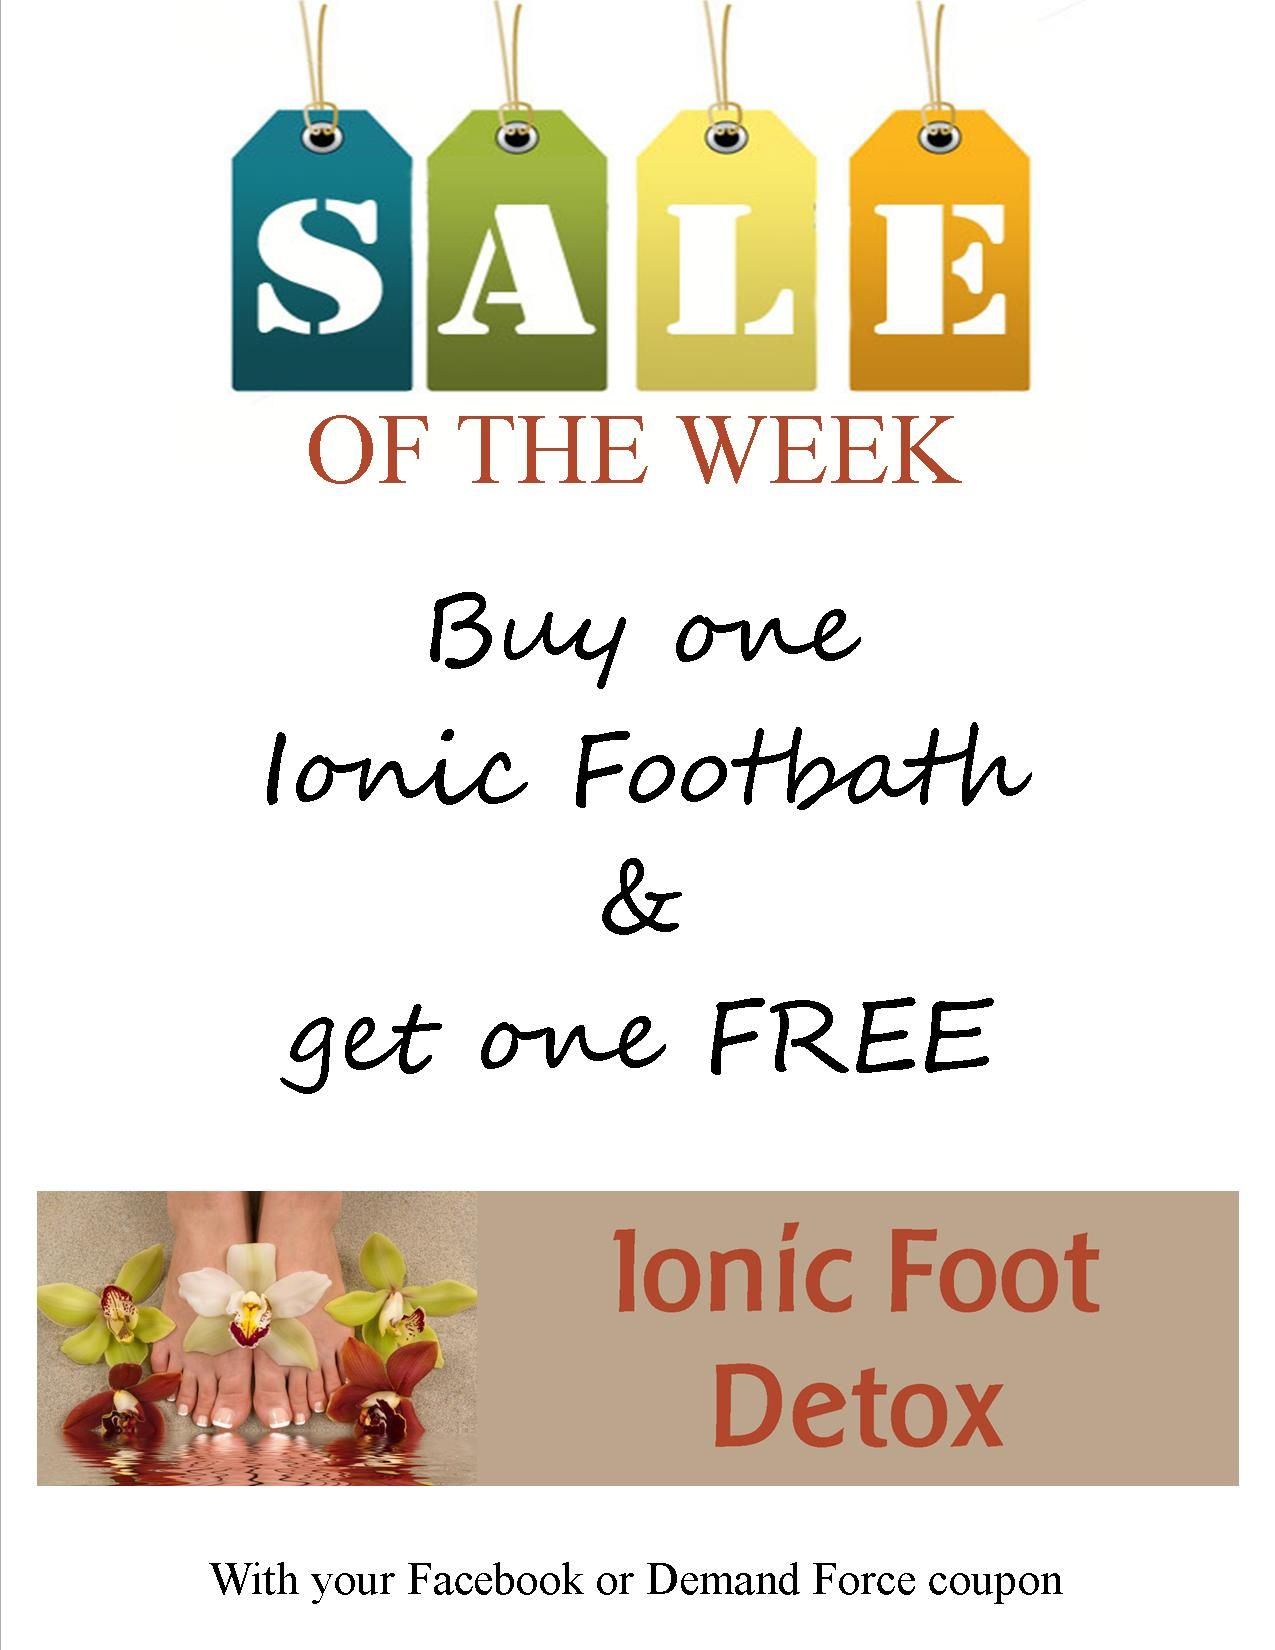 Footbaths are buy one & get one free this week, Make your